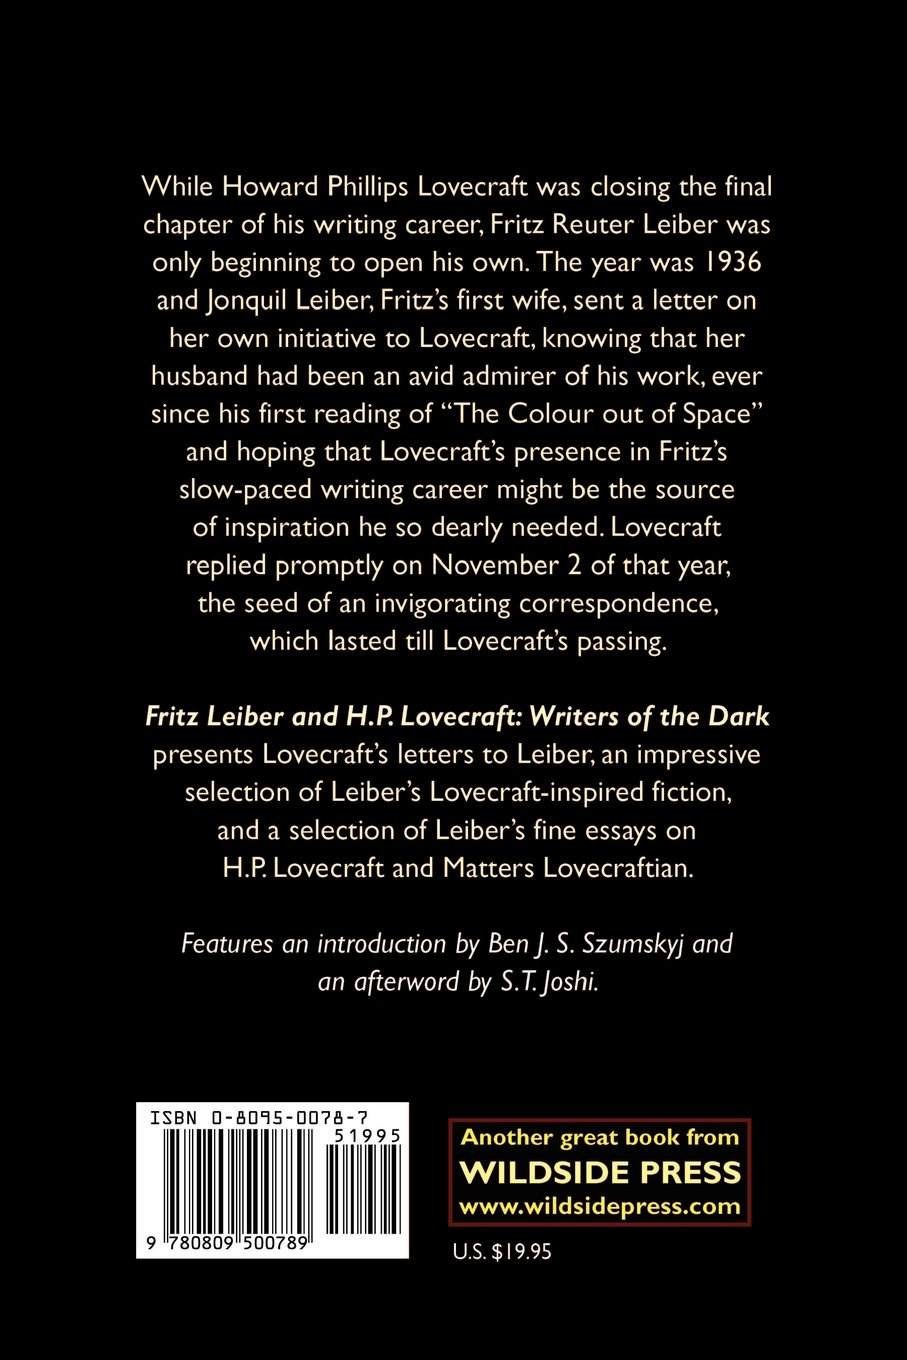 fritz leiber and h p lovecraft writers of the dark fritz leiber fritz leiber and h p lovecraft writers of the dark fritz leiber 9780809500789 com books